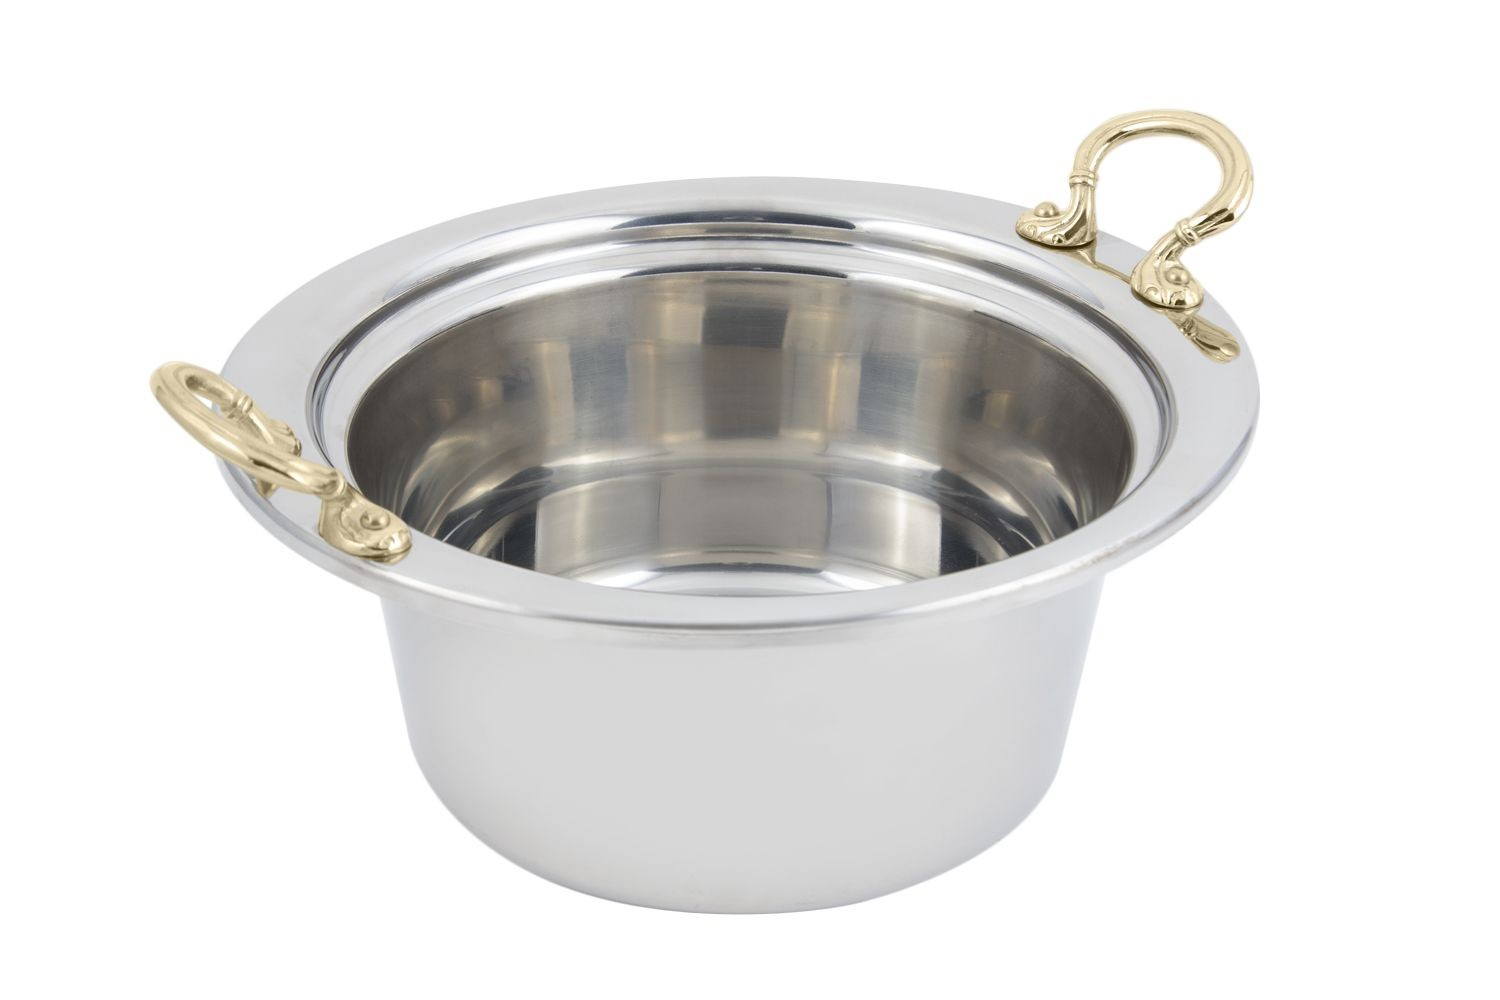 Bon Chef 5260HR Plain Design Casserole Dish with Round Brass Handles, 5 Qt.